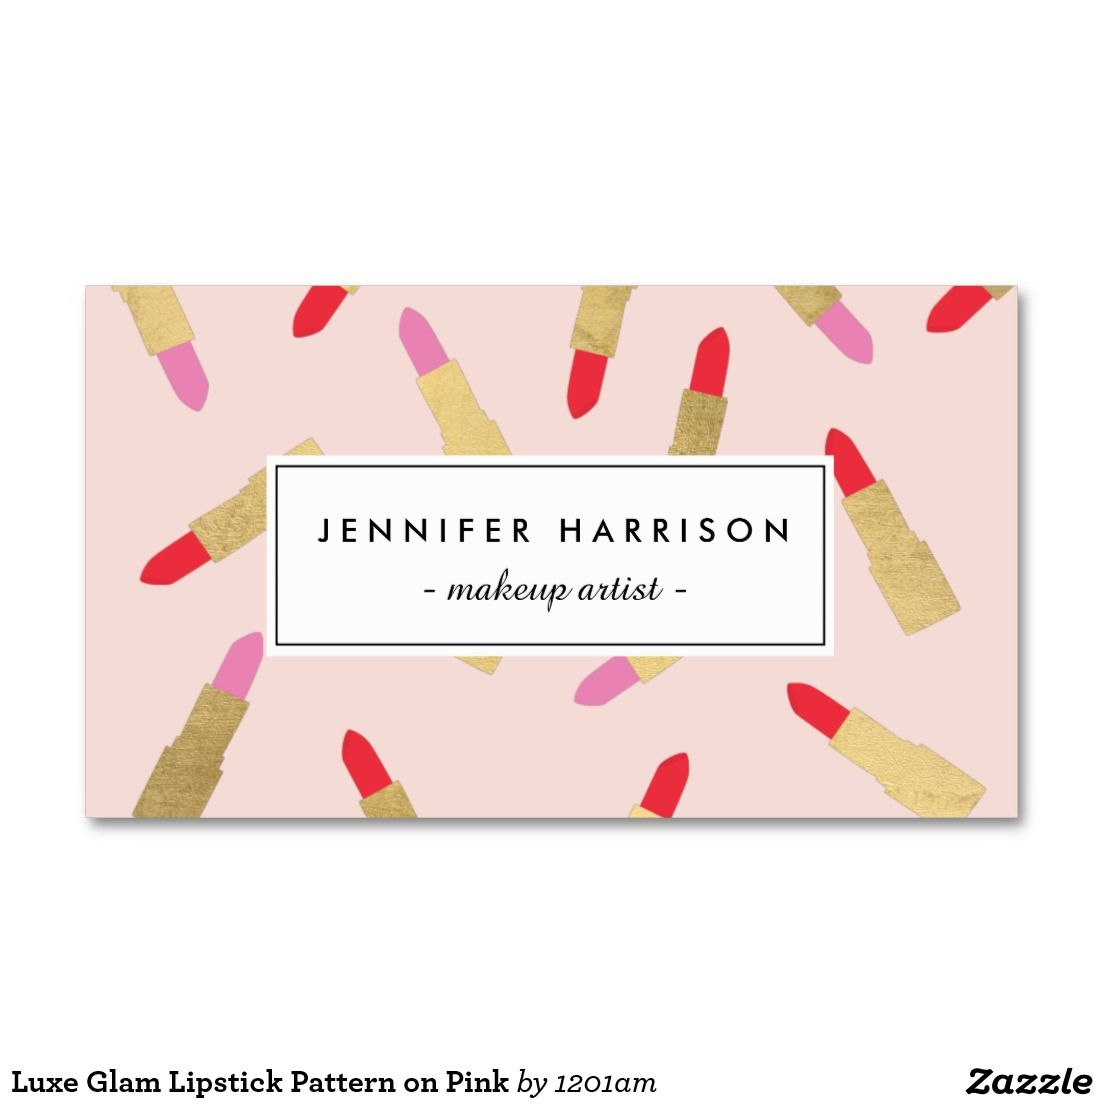 Luxe glam lipstick pattern on pink makeup artist business card luxe glam lipstick pattern on pink makeup artist business card alramifo Image collections